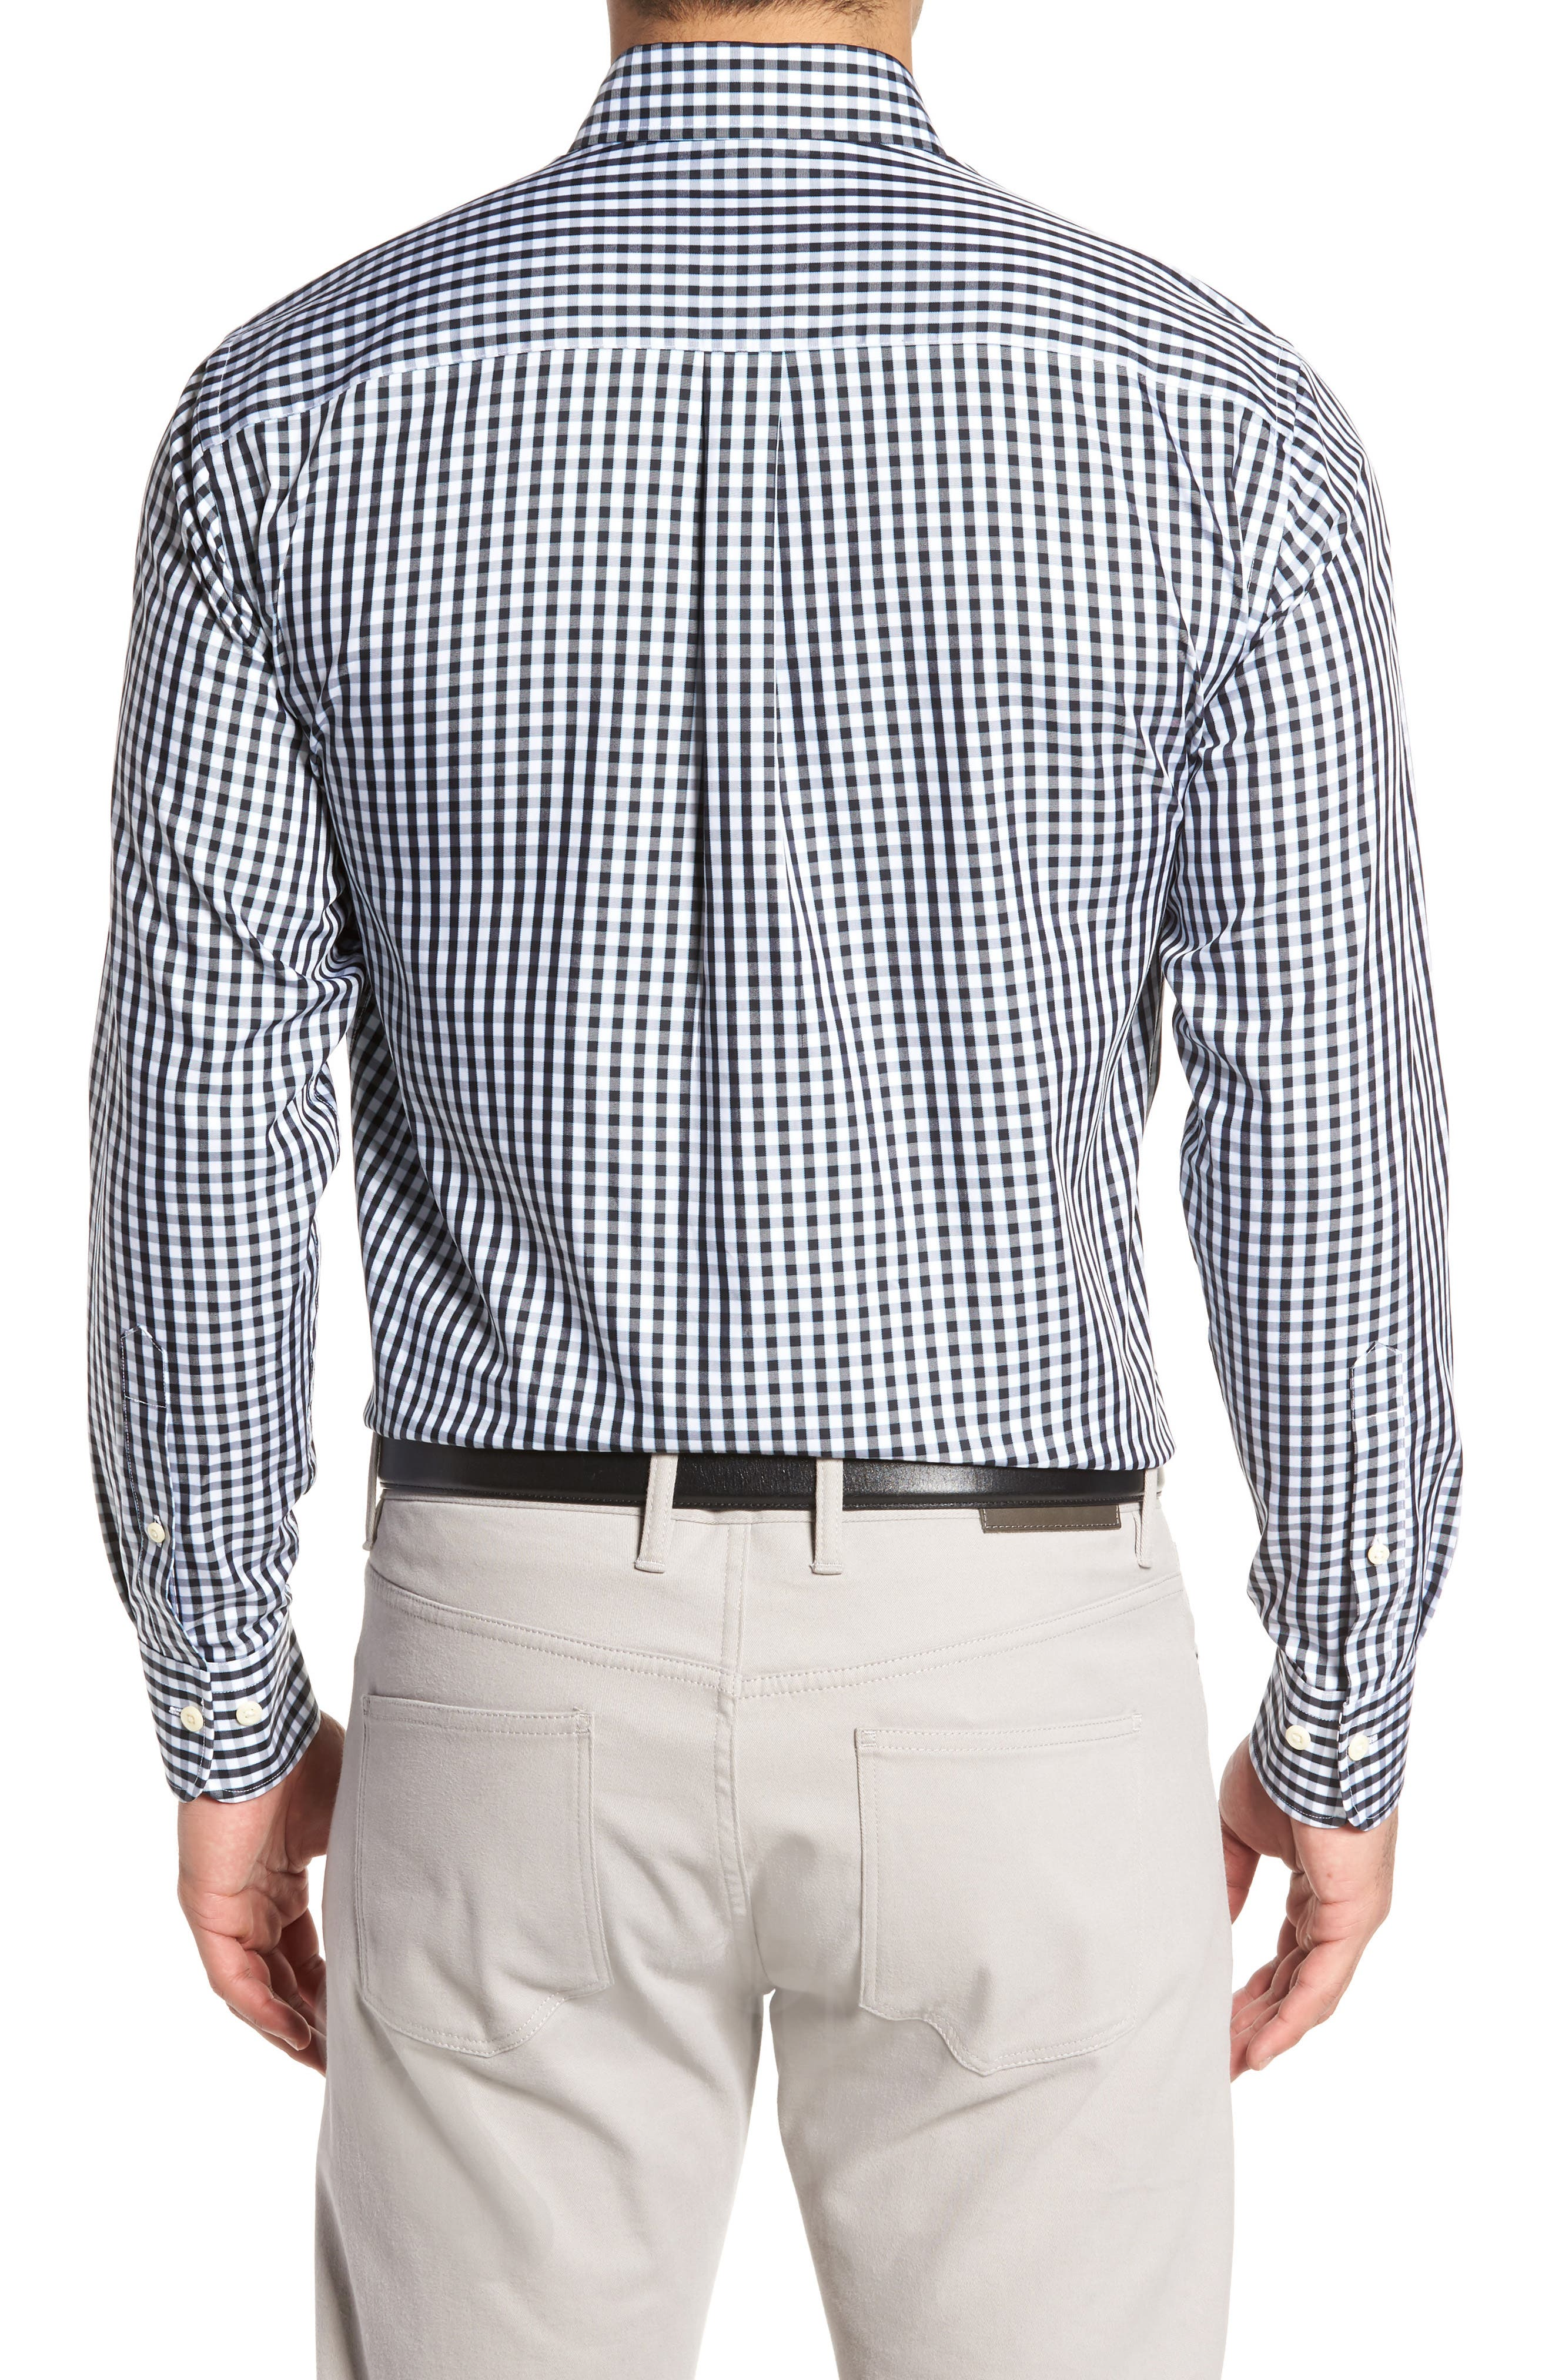 Black Sand Classic Fit Gingham Check Sport Shirt,                             Alternate thumbnail 2, color,                             Black